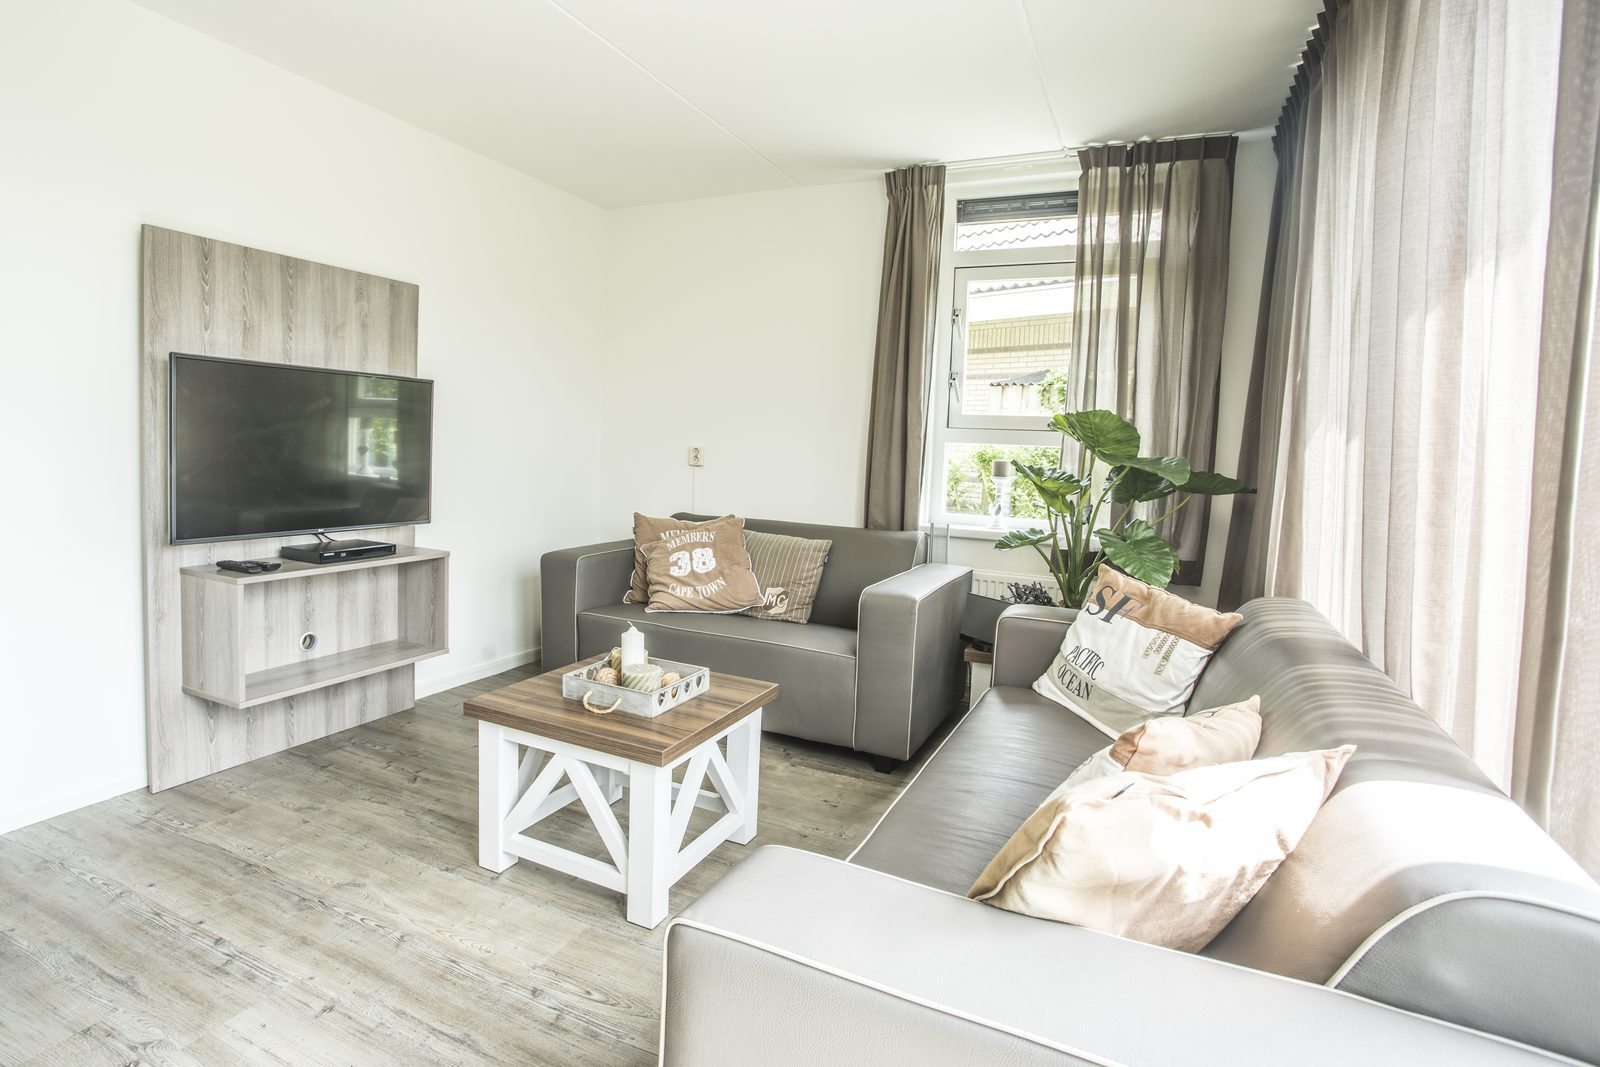 Rent a holiday home North Holland